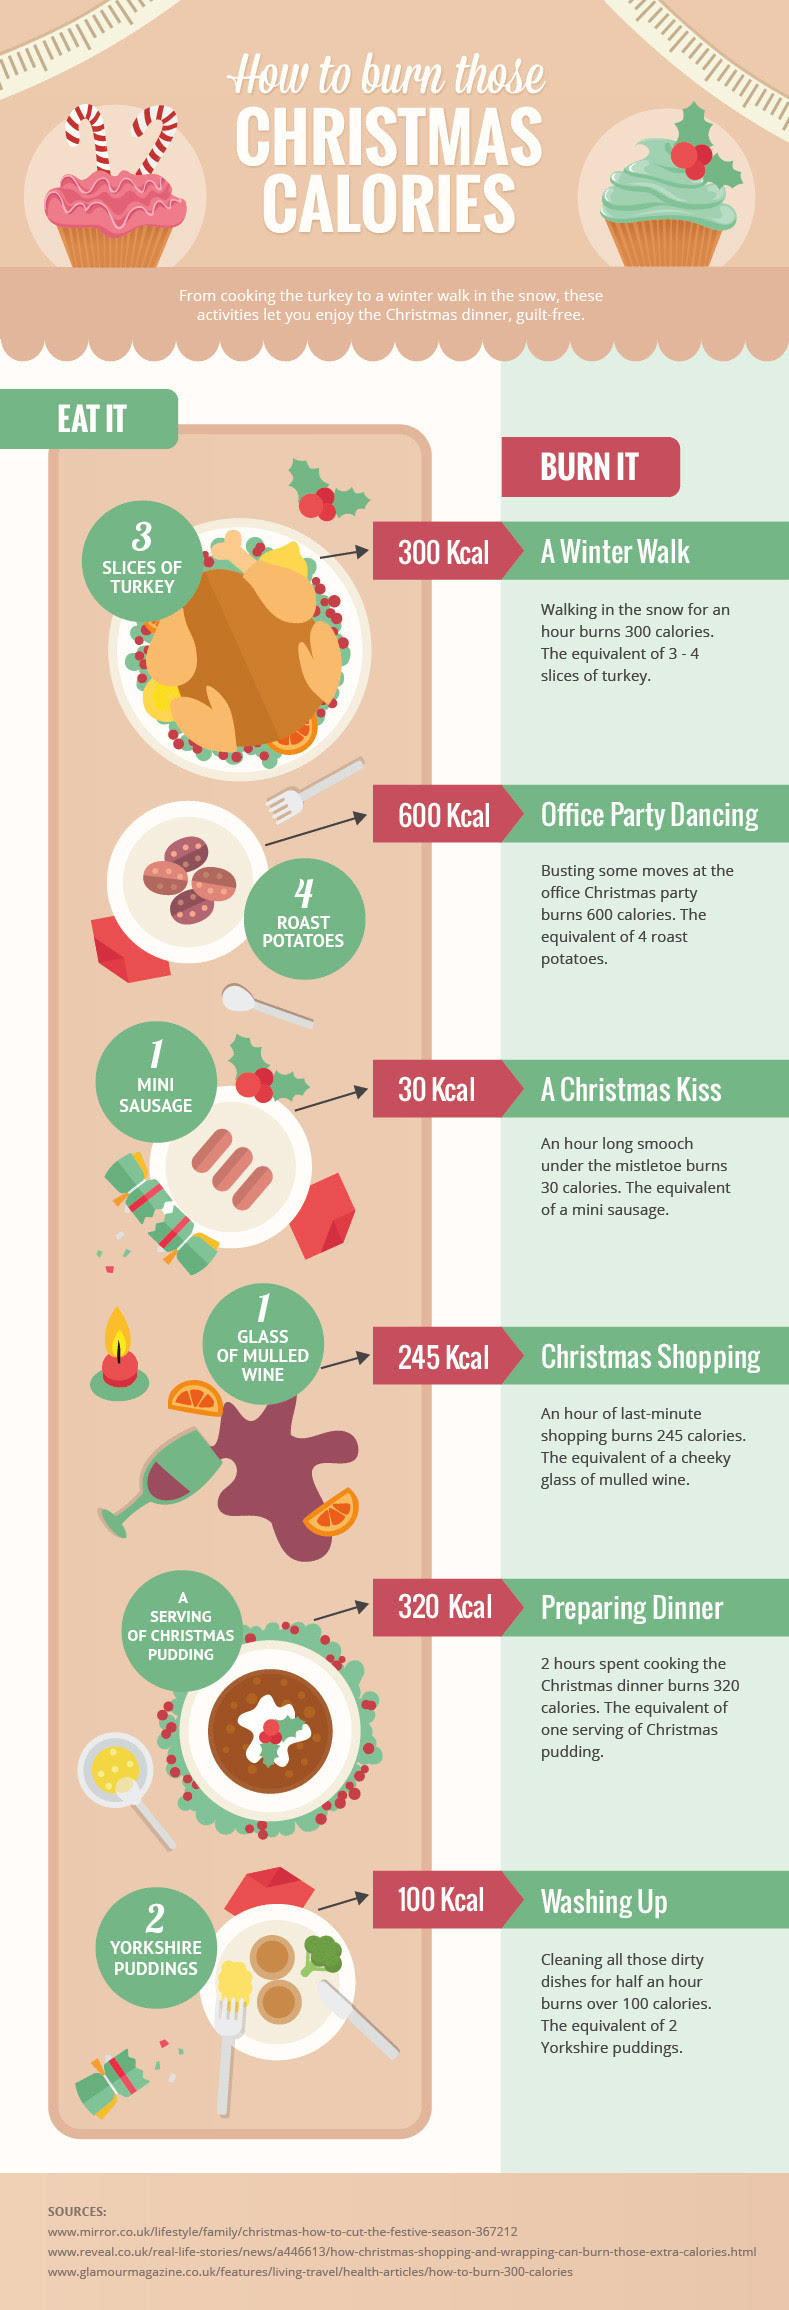 Infographic: How to Burn Those Christmas Calories